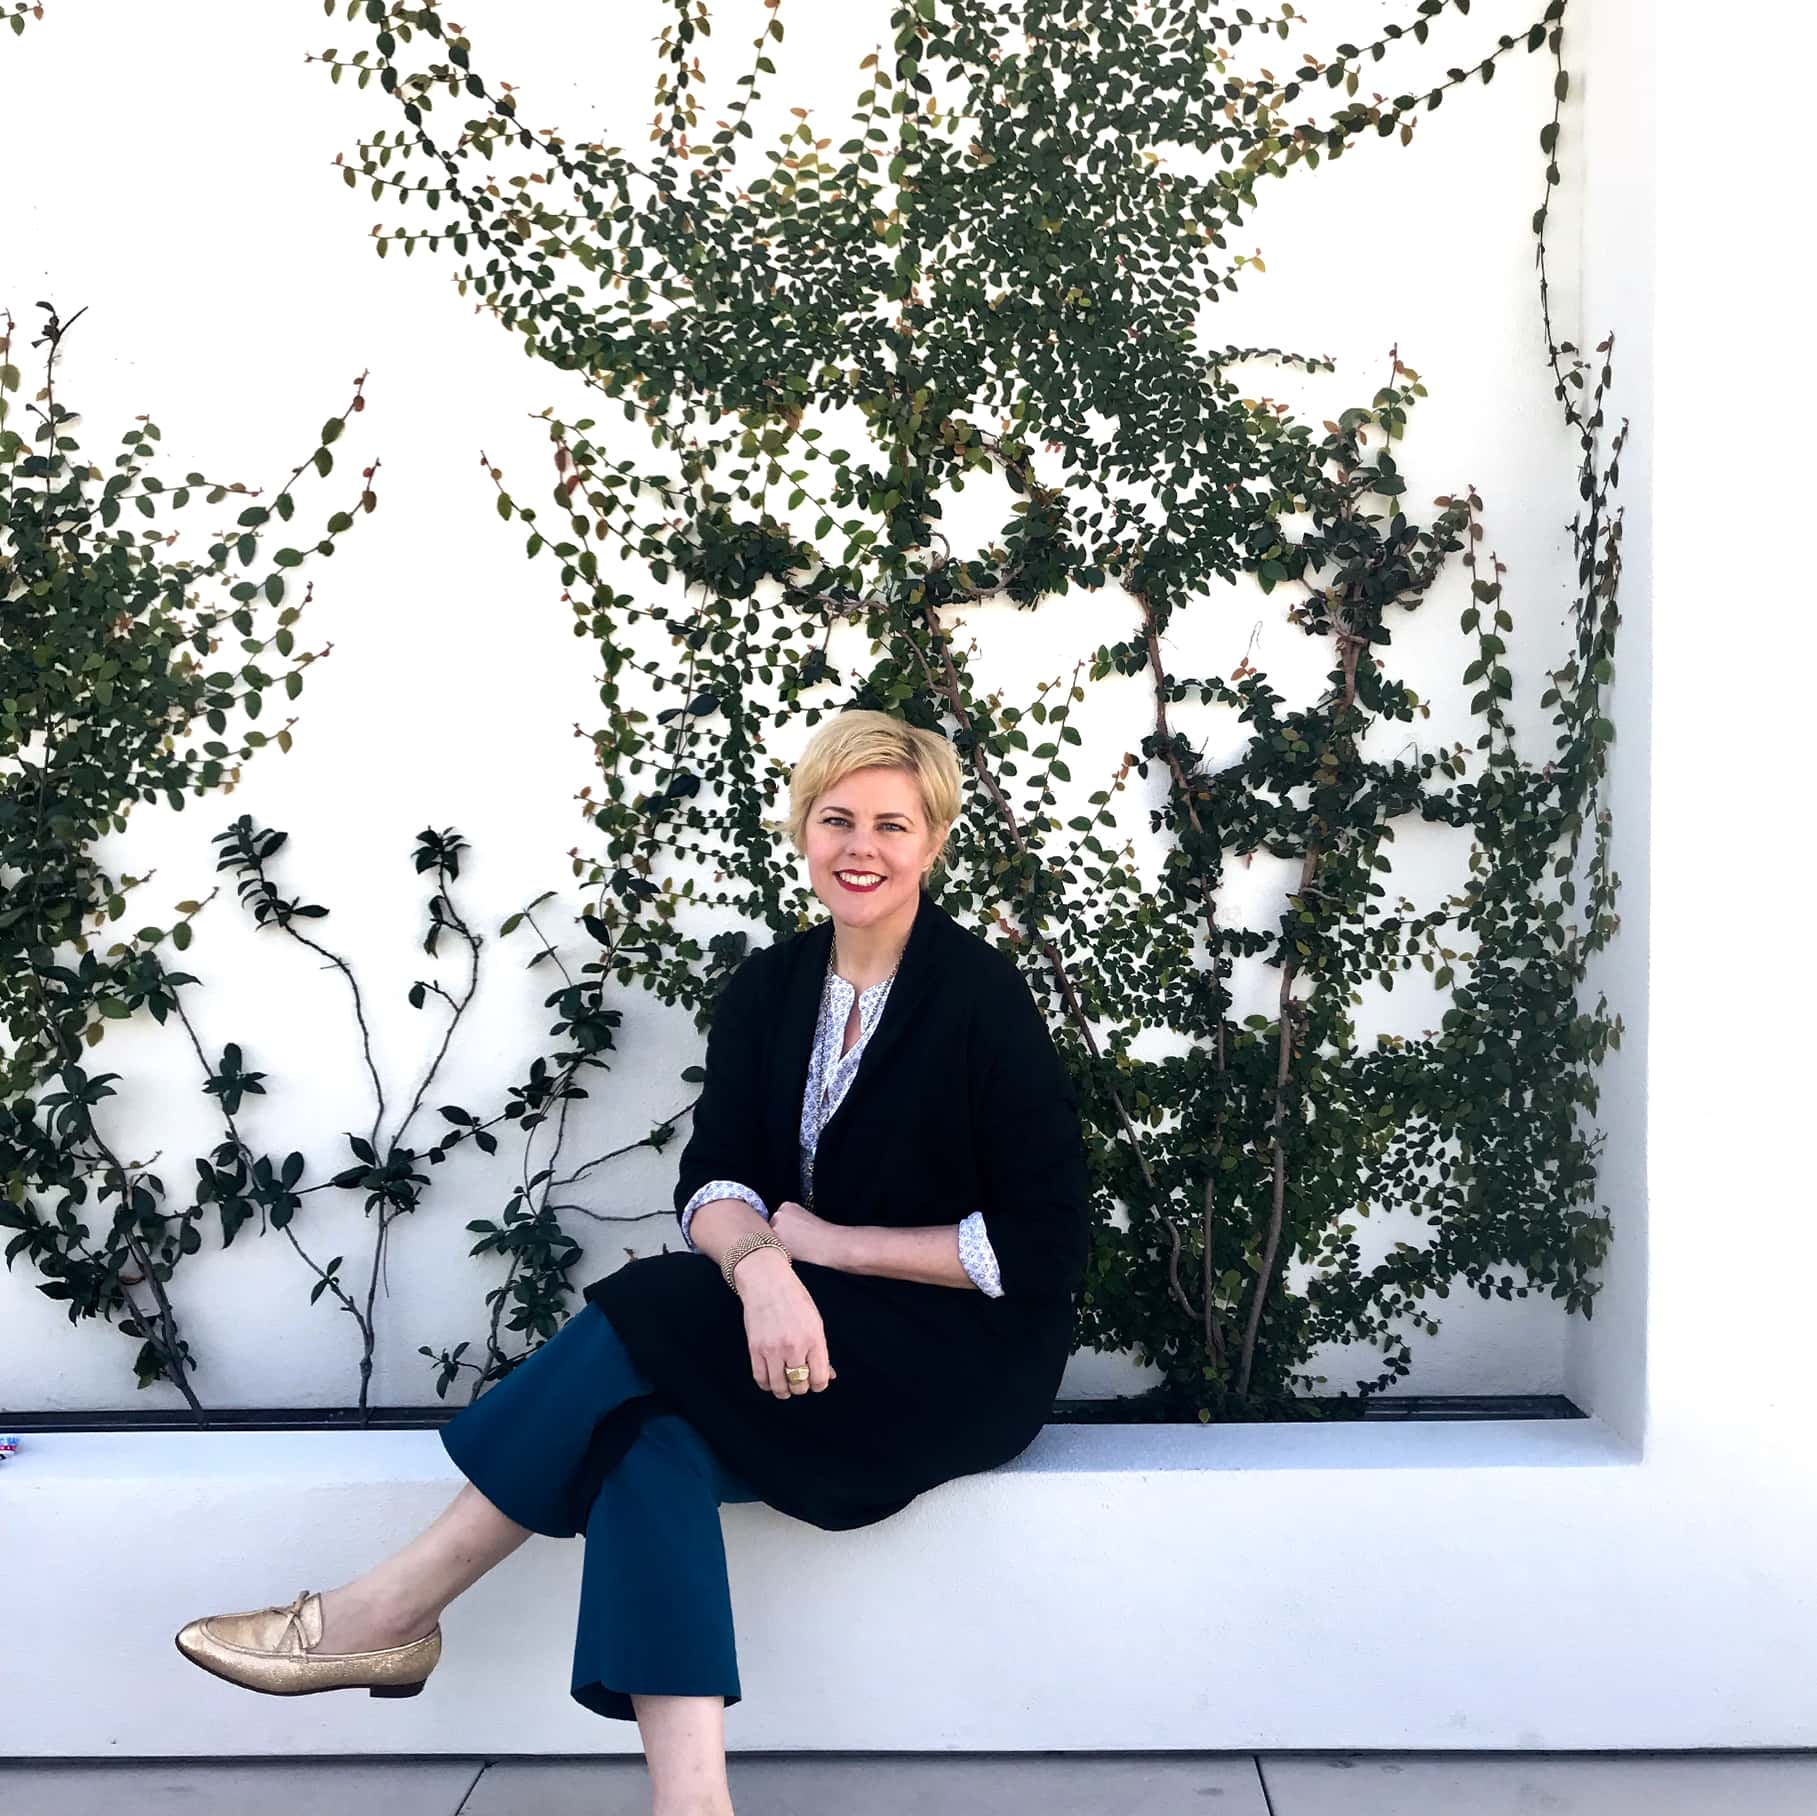 5 easy interior design tips to make an impact – Blog by Darci Hether New York